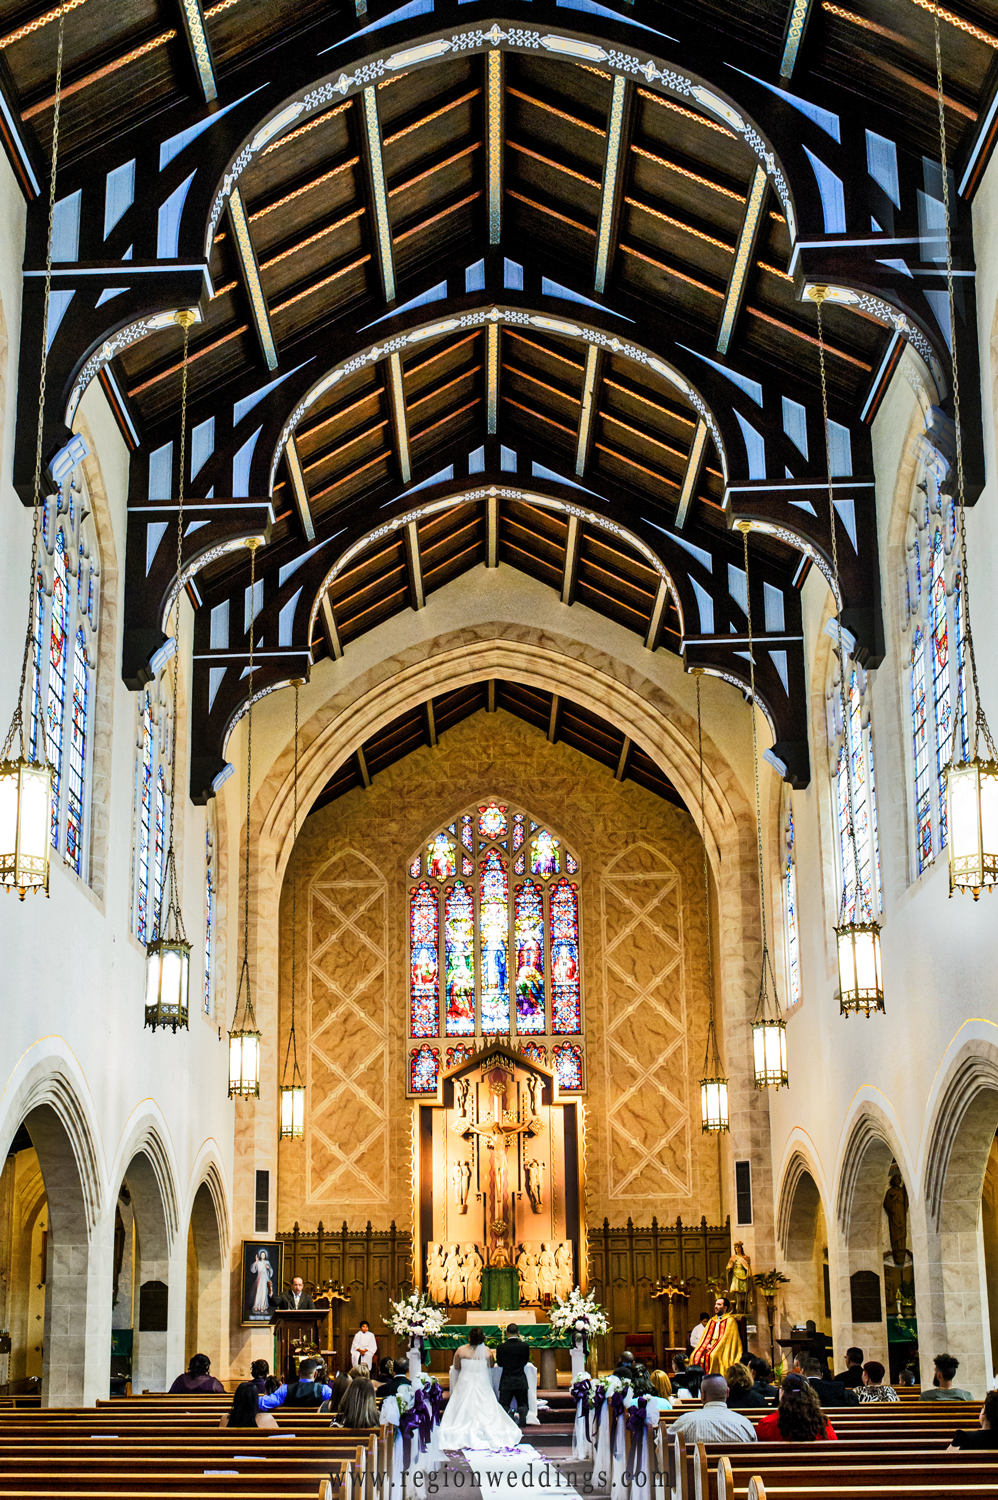 The spectacular architecture of St. Casimir Church during a wedding ceremony.